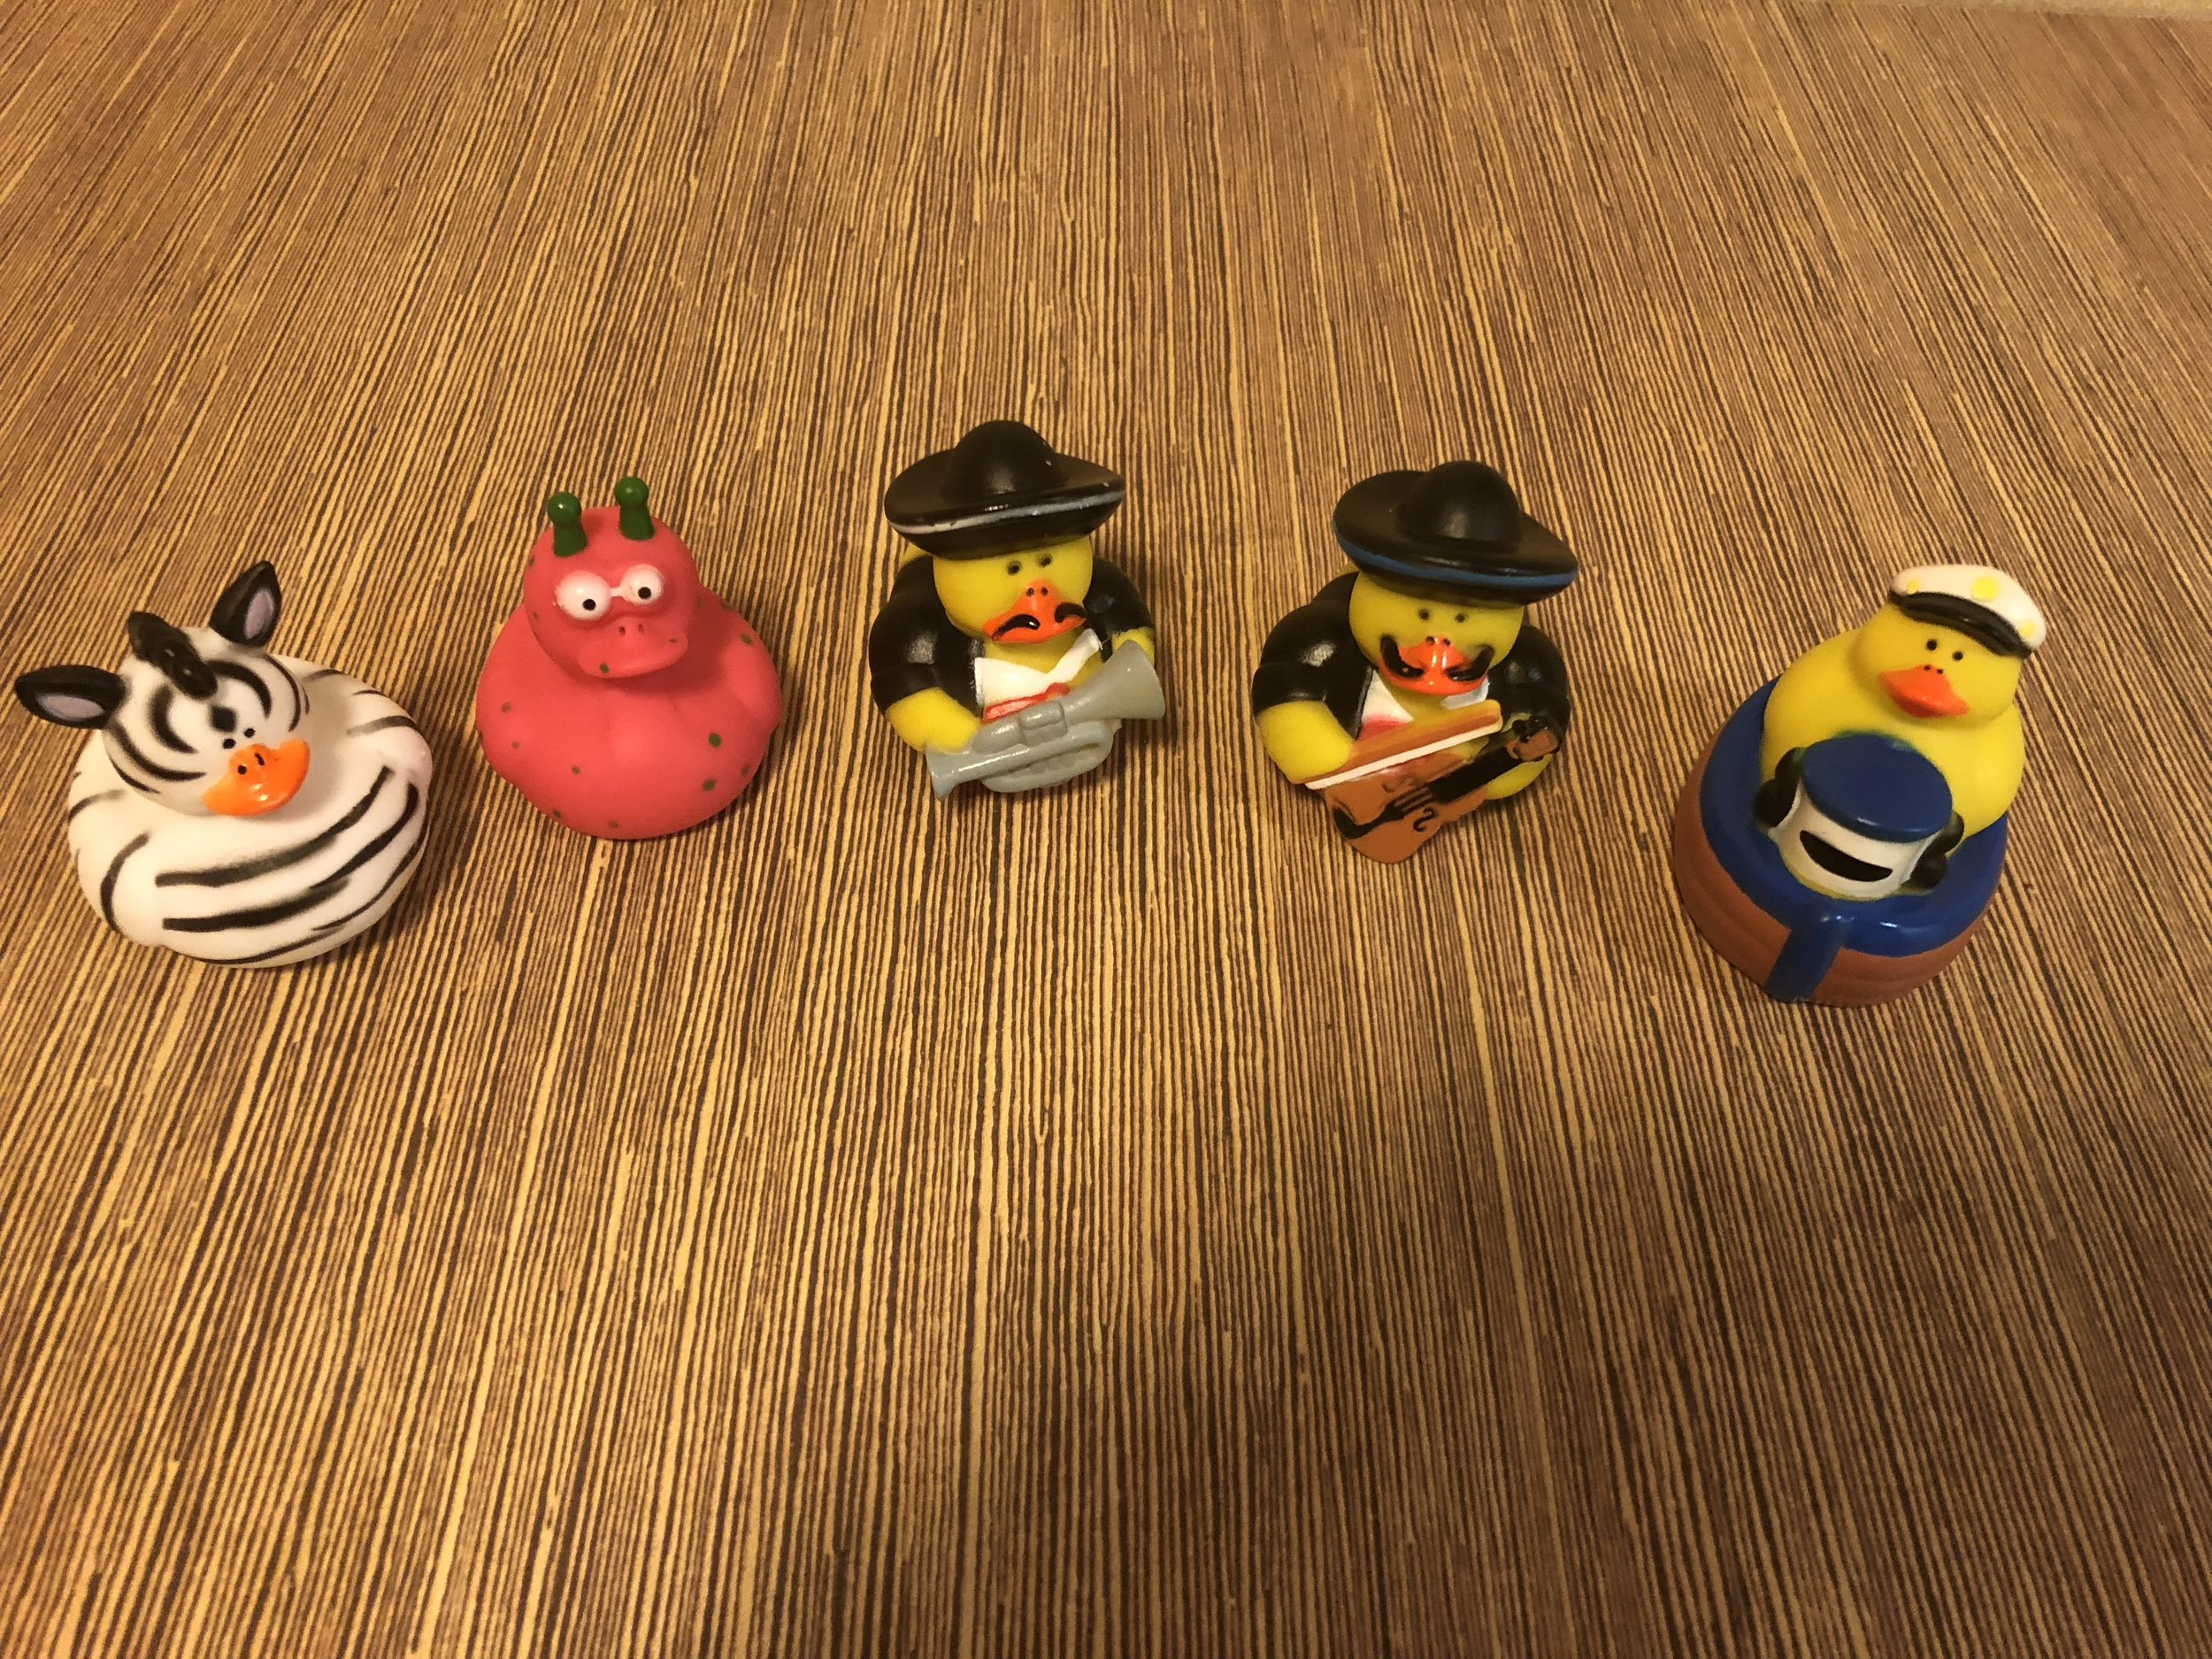 The Dream Team as Rubber Ducks: @ the Marriott Hotel